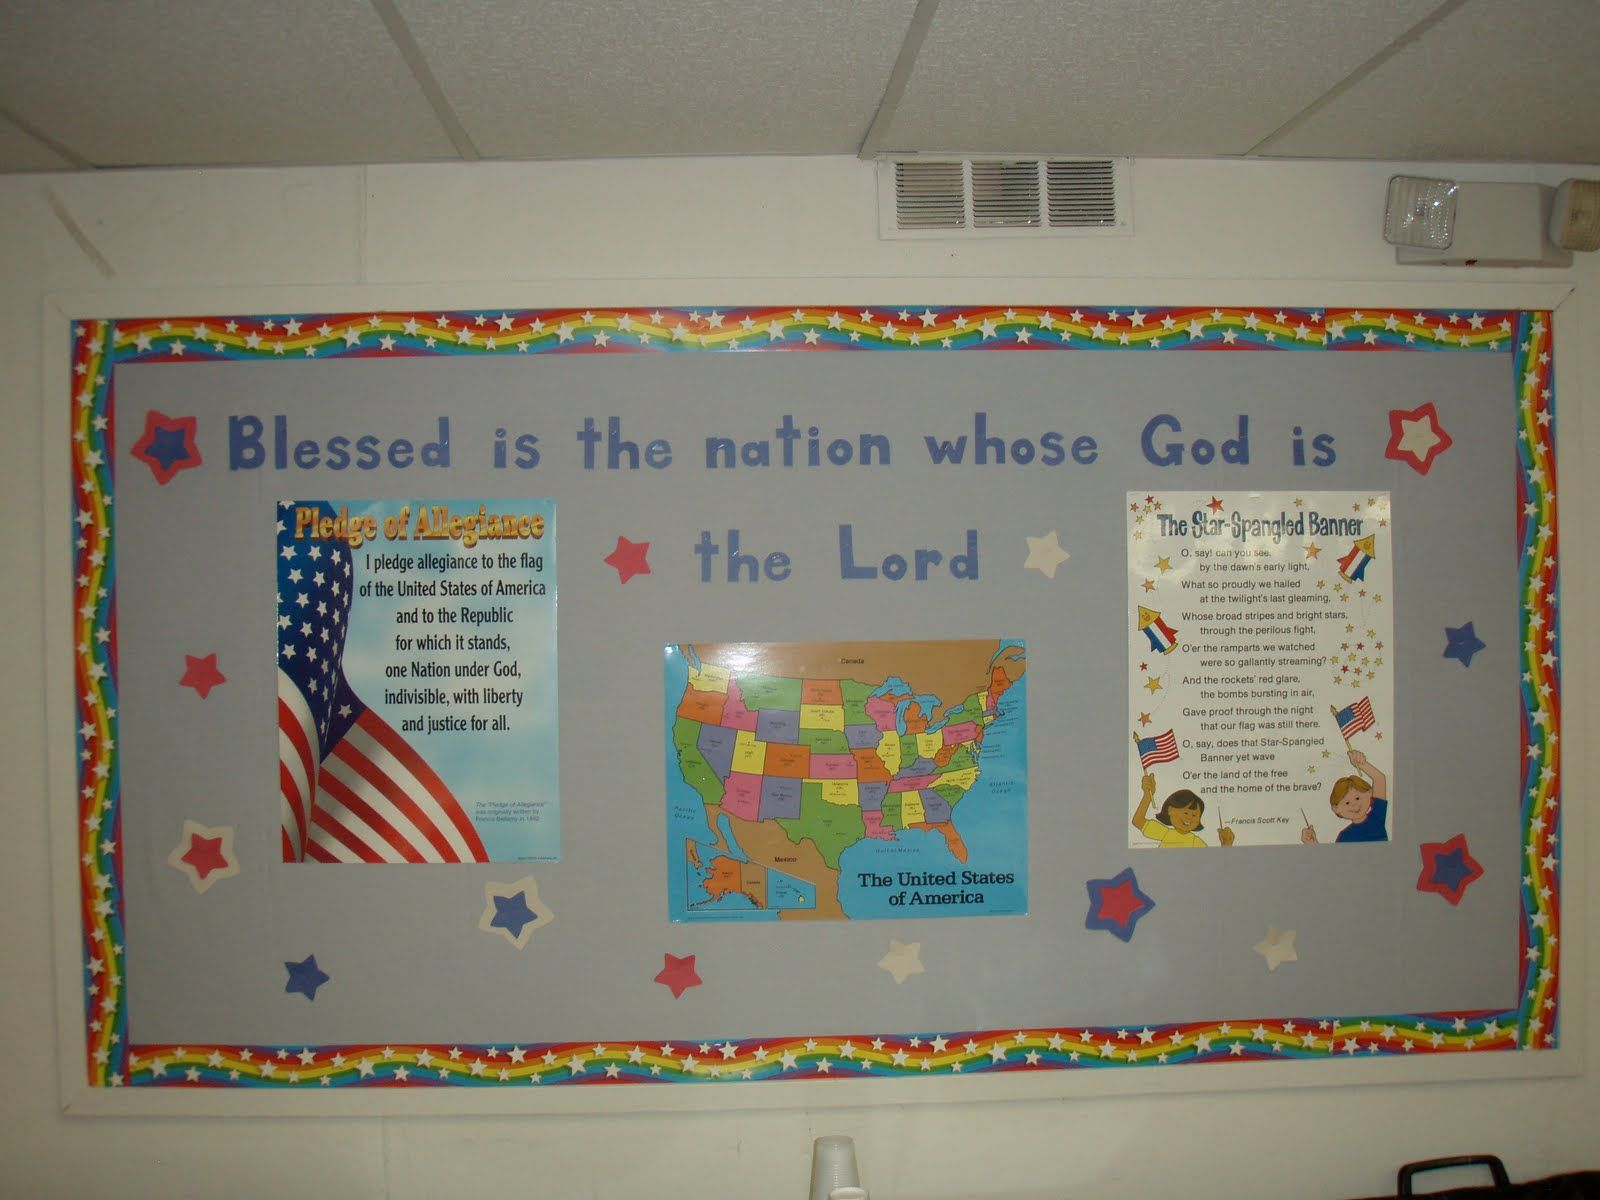 Bulletin board ideas for the month of july - Church Bulletin Board Ideas Board Are Posters Of The Pledge Of Allegiance